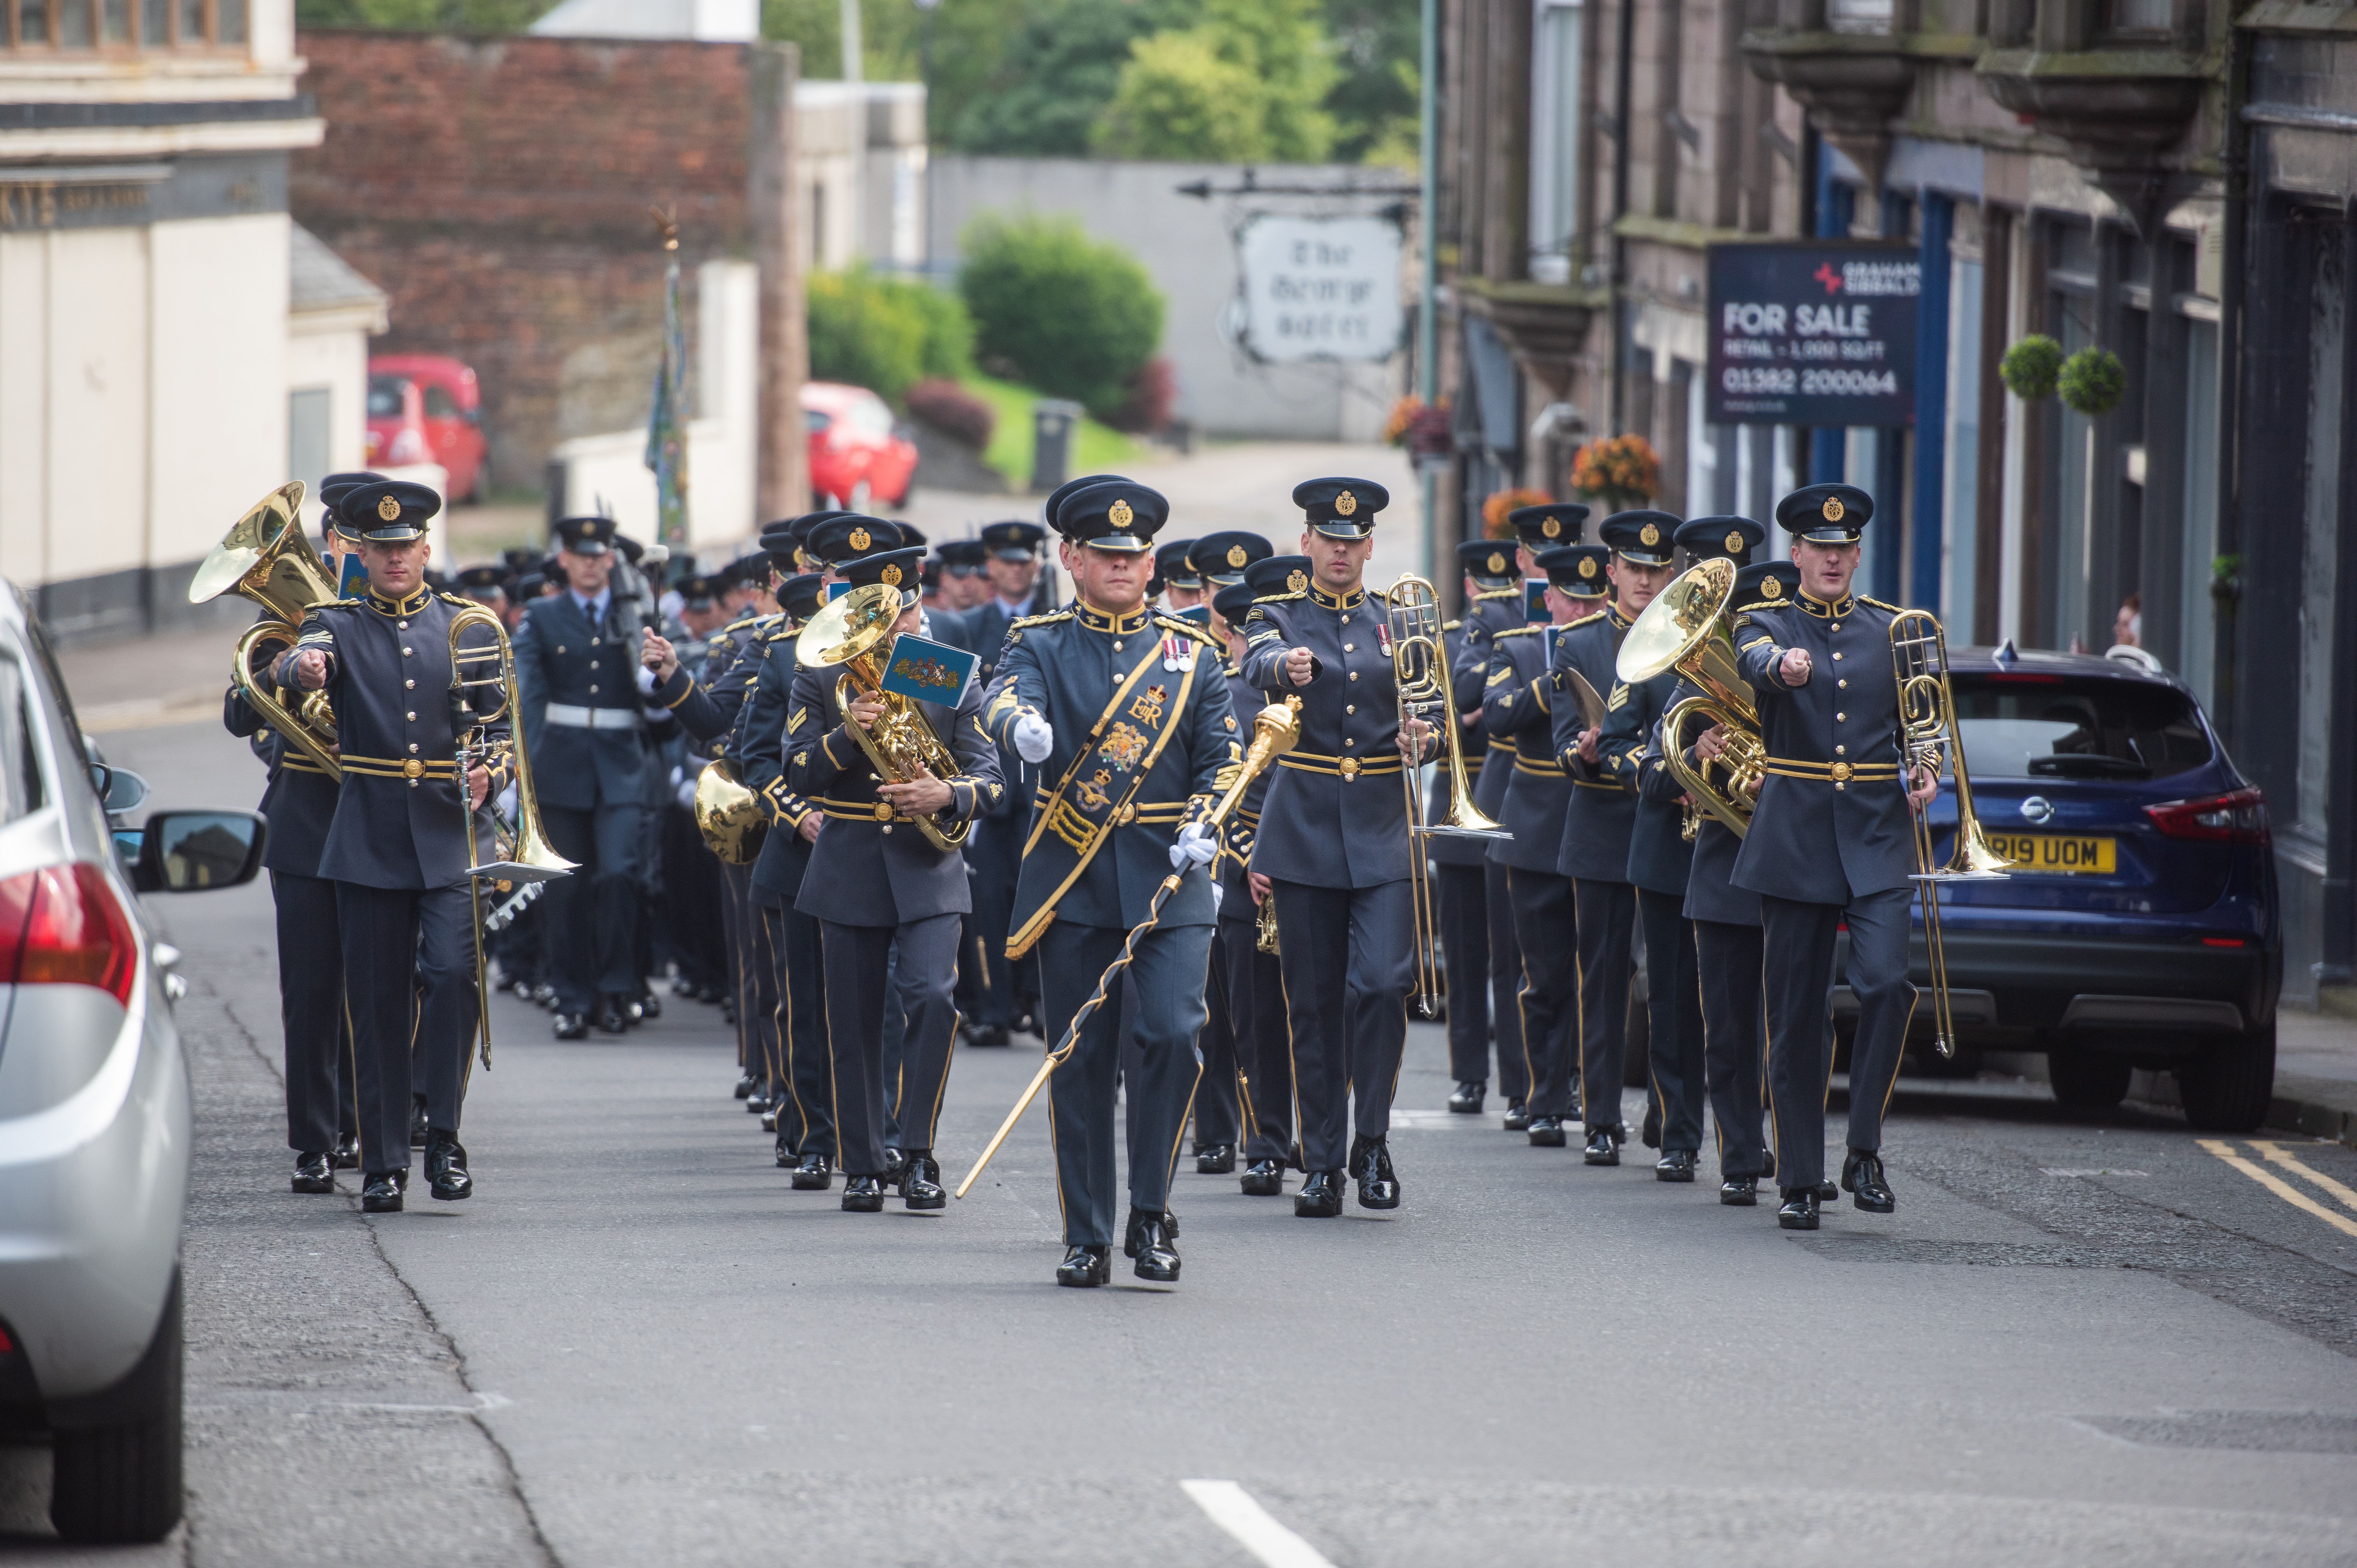 The parade and presentation to the No. II (AC) Squadron, George Street, Montrose.